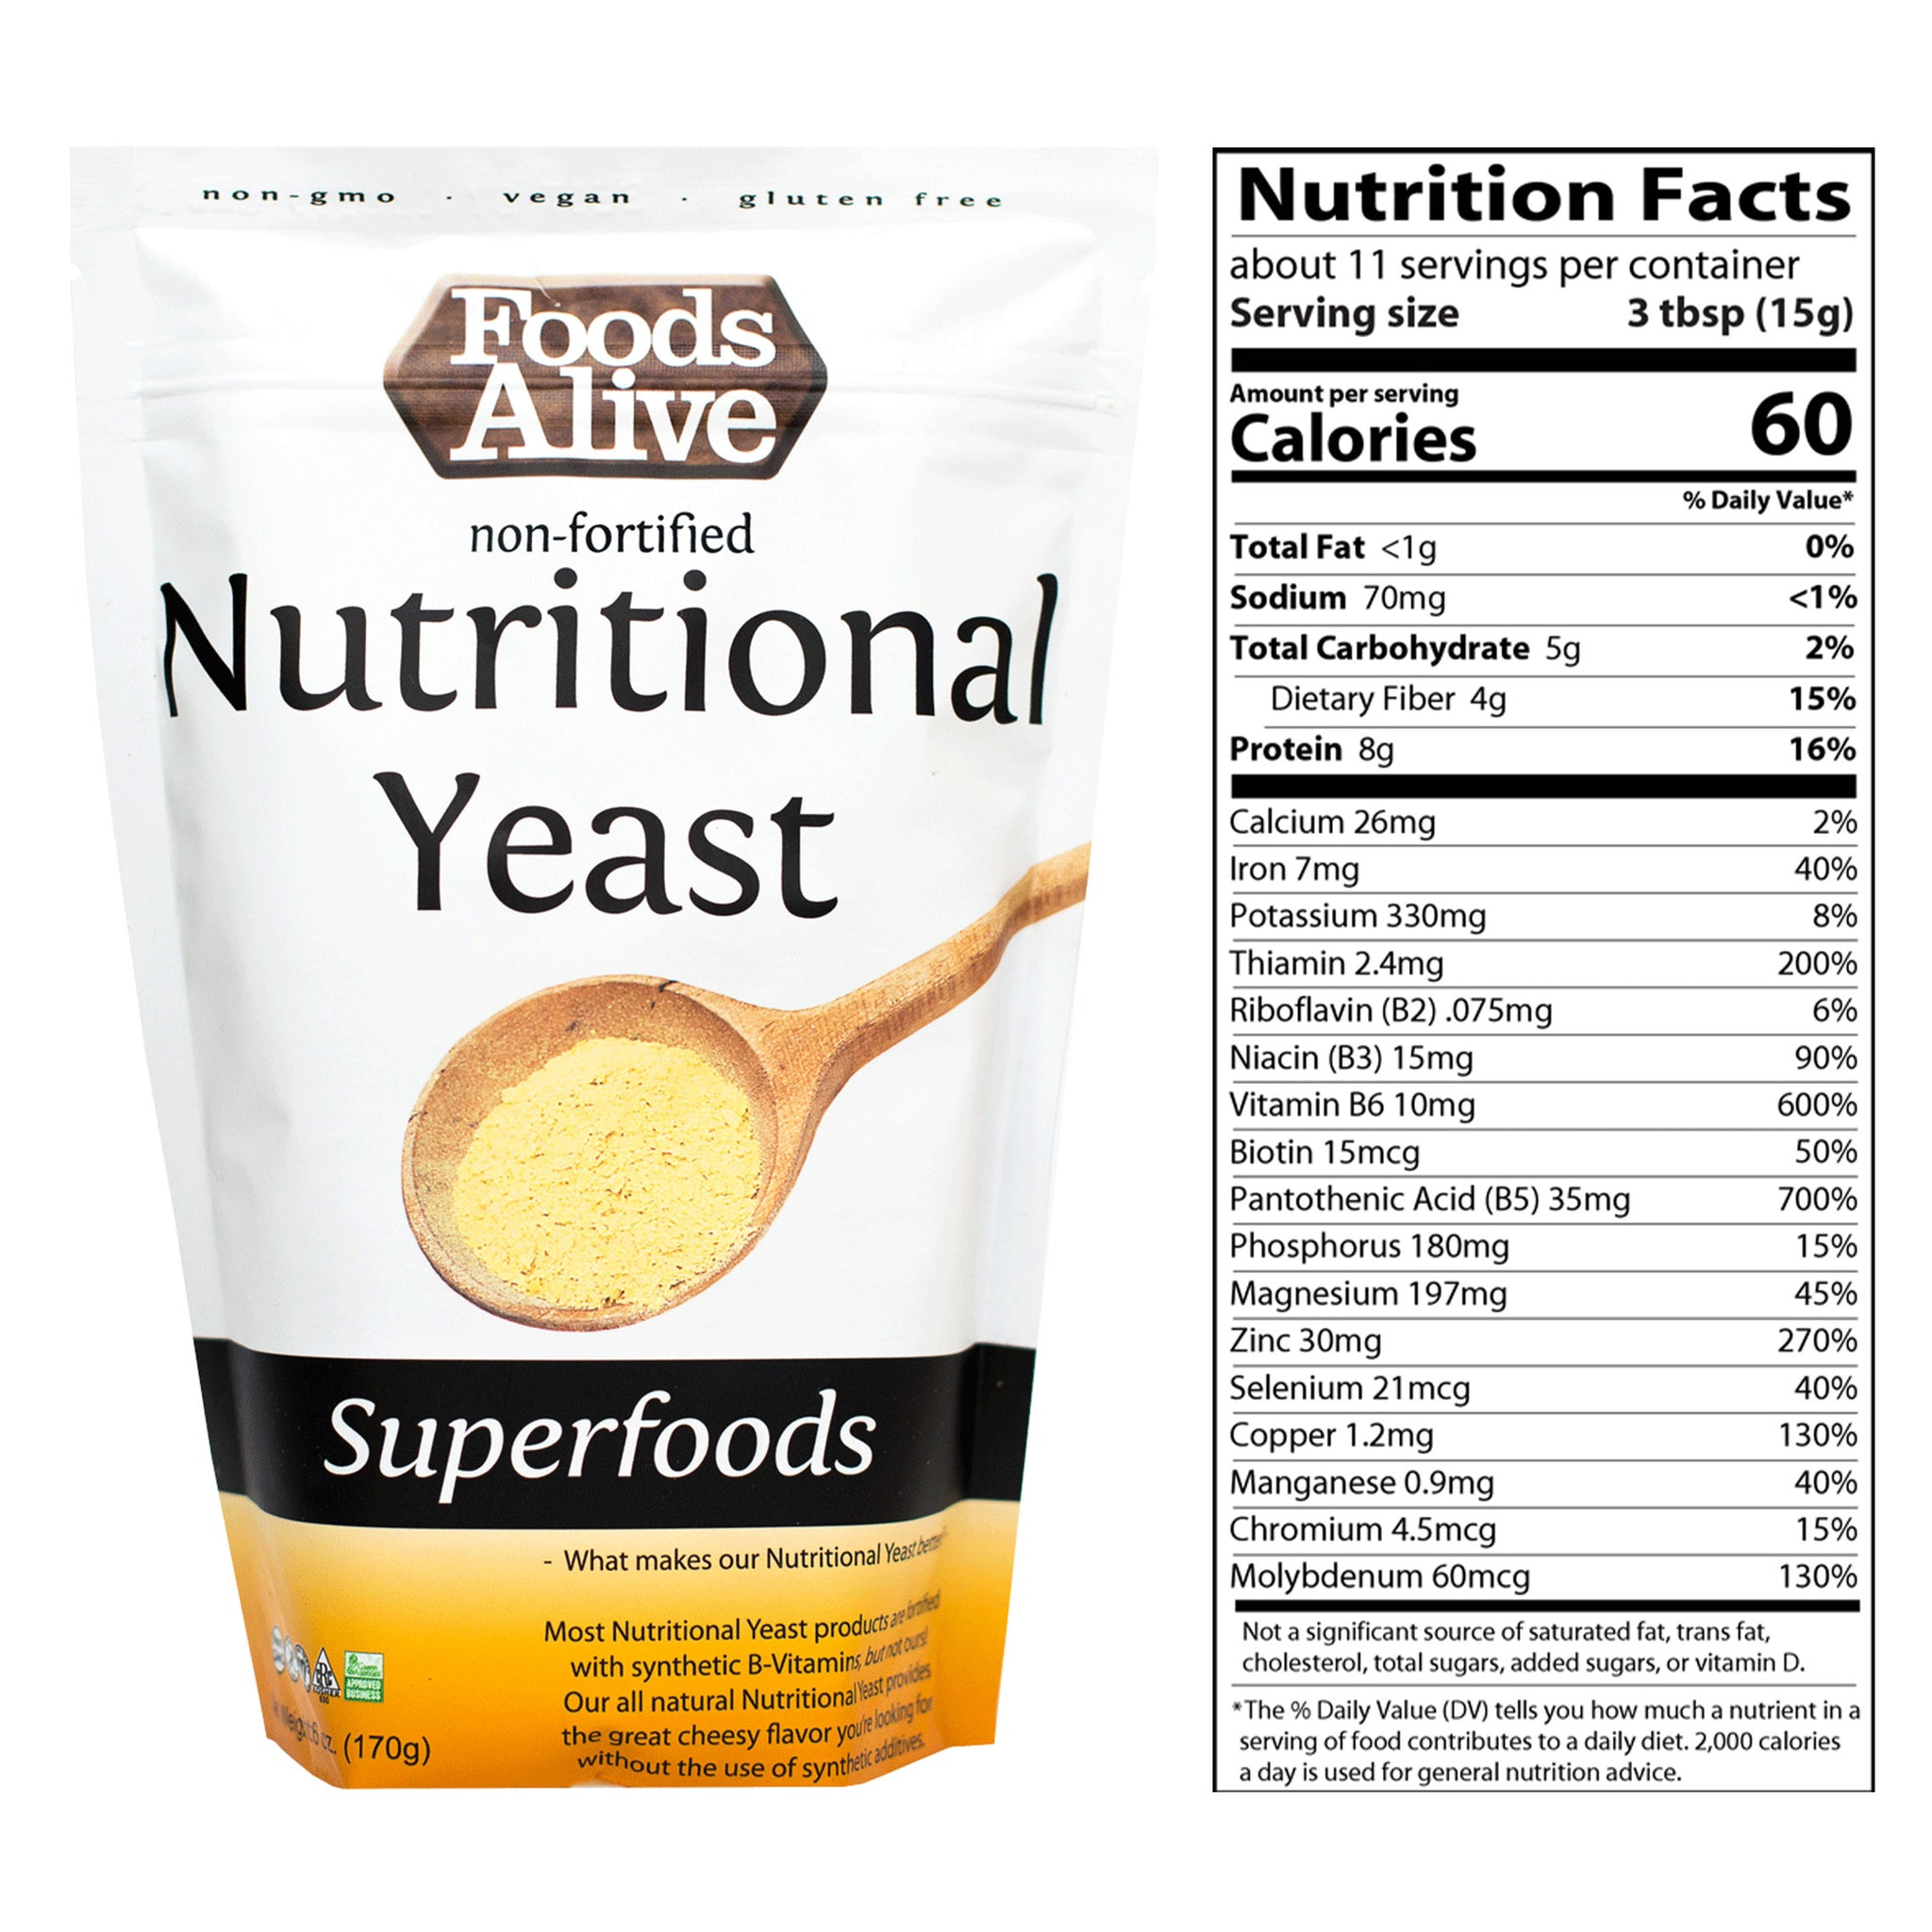 Nutritional Yeast - Non-Fortified and Non-GMO - 6oz With Nutritional Panel - Foods Alive